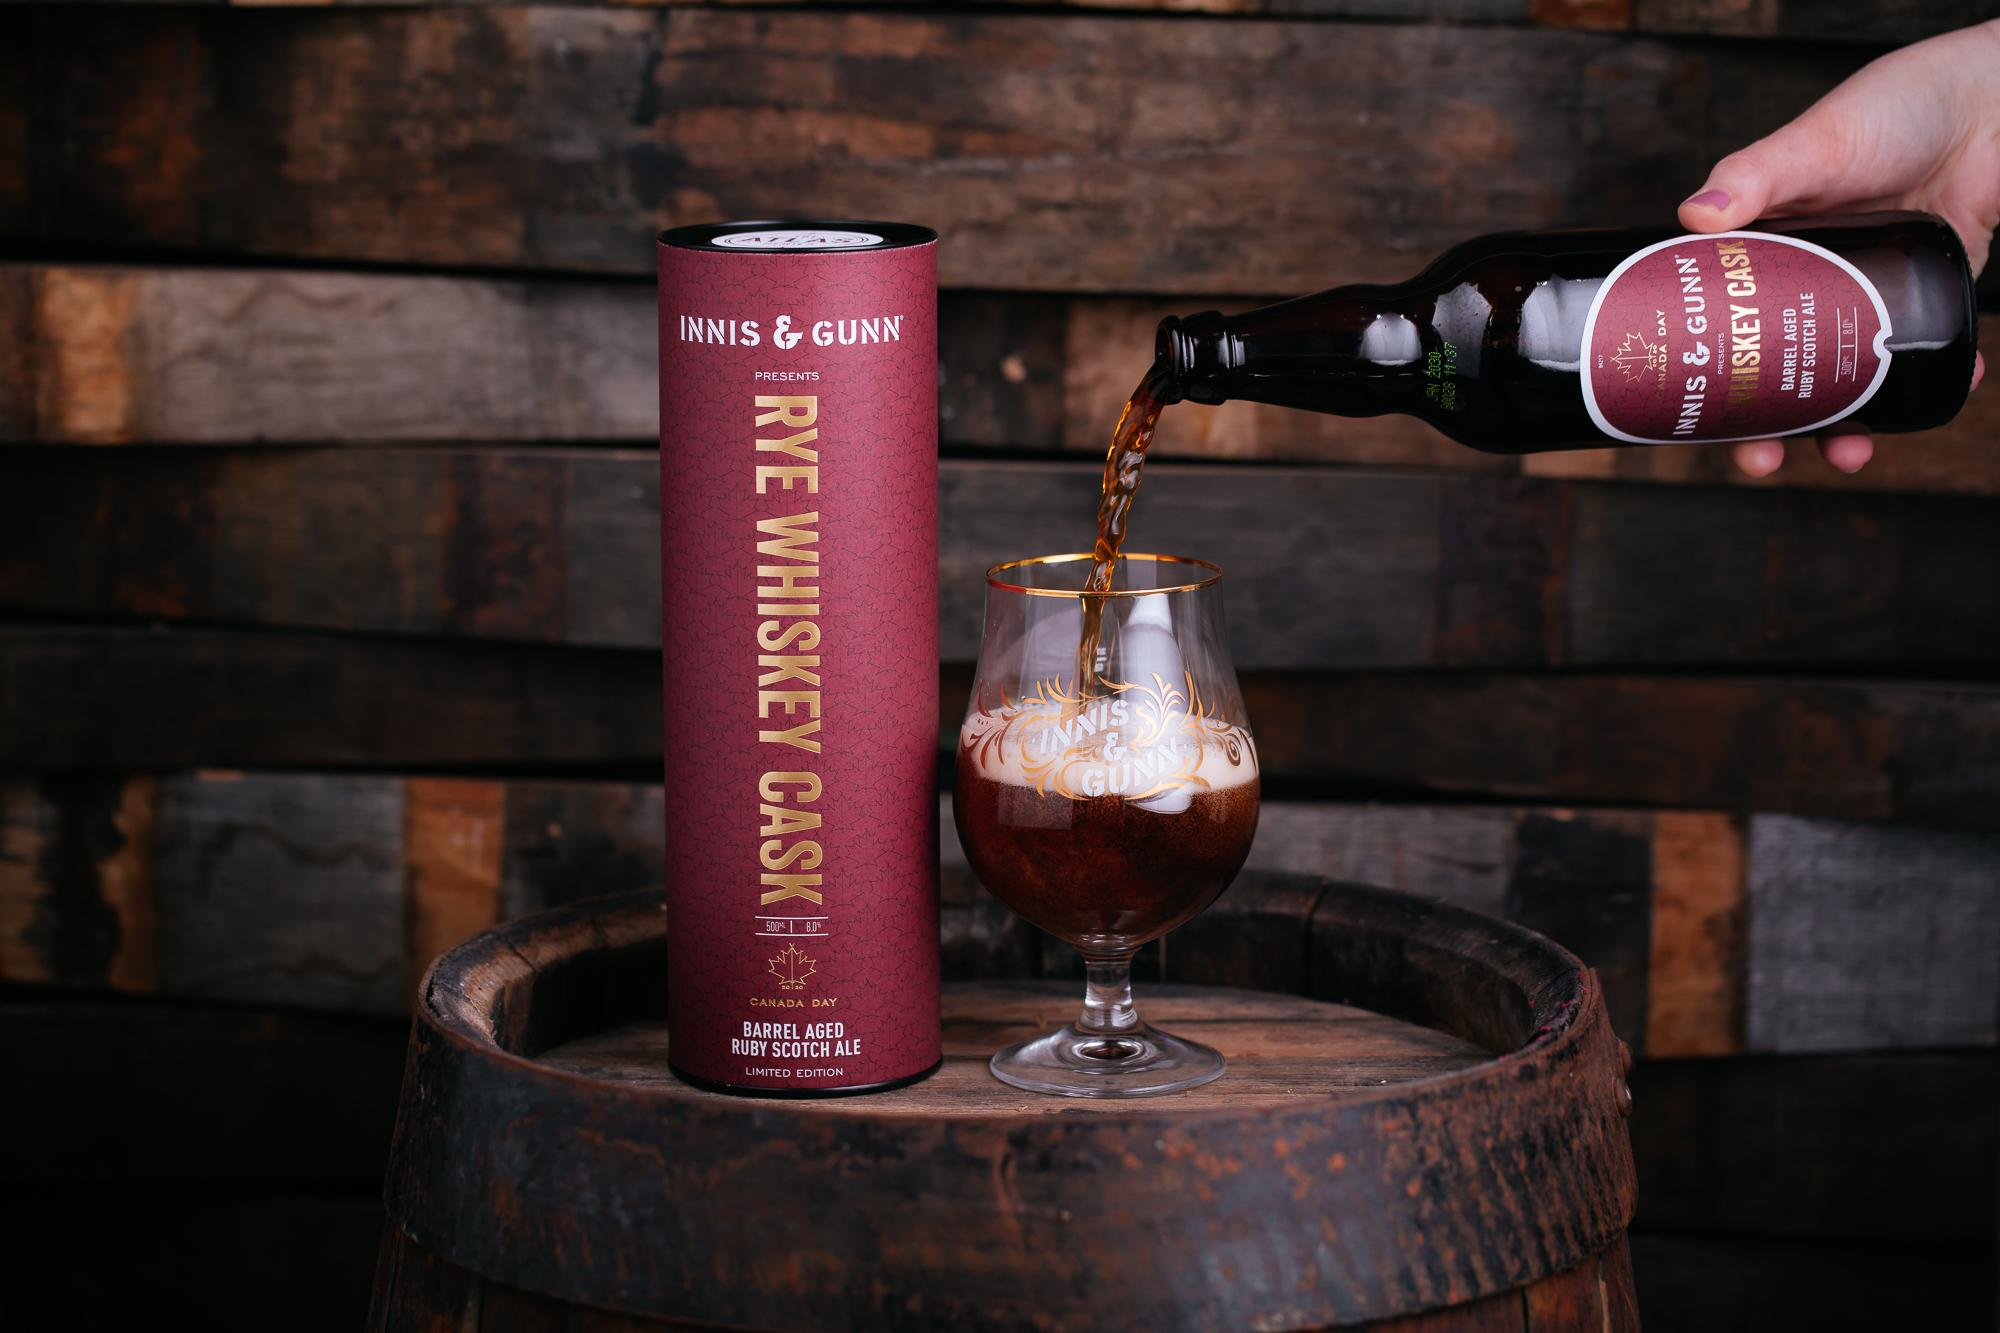 Innis & Gunn Release Two New Limited Edition Beers With All Profits To Go To The Care Workers' Charity photo